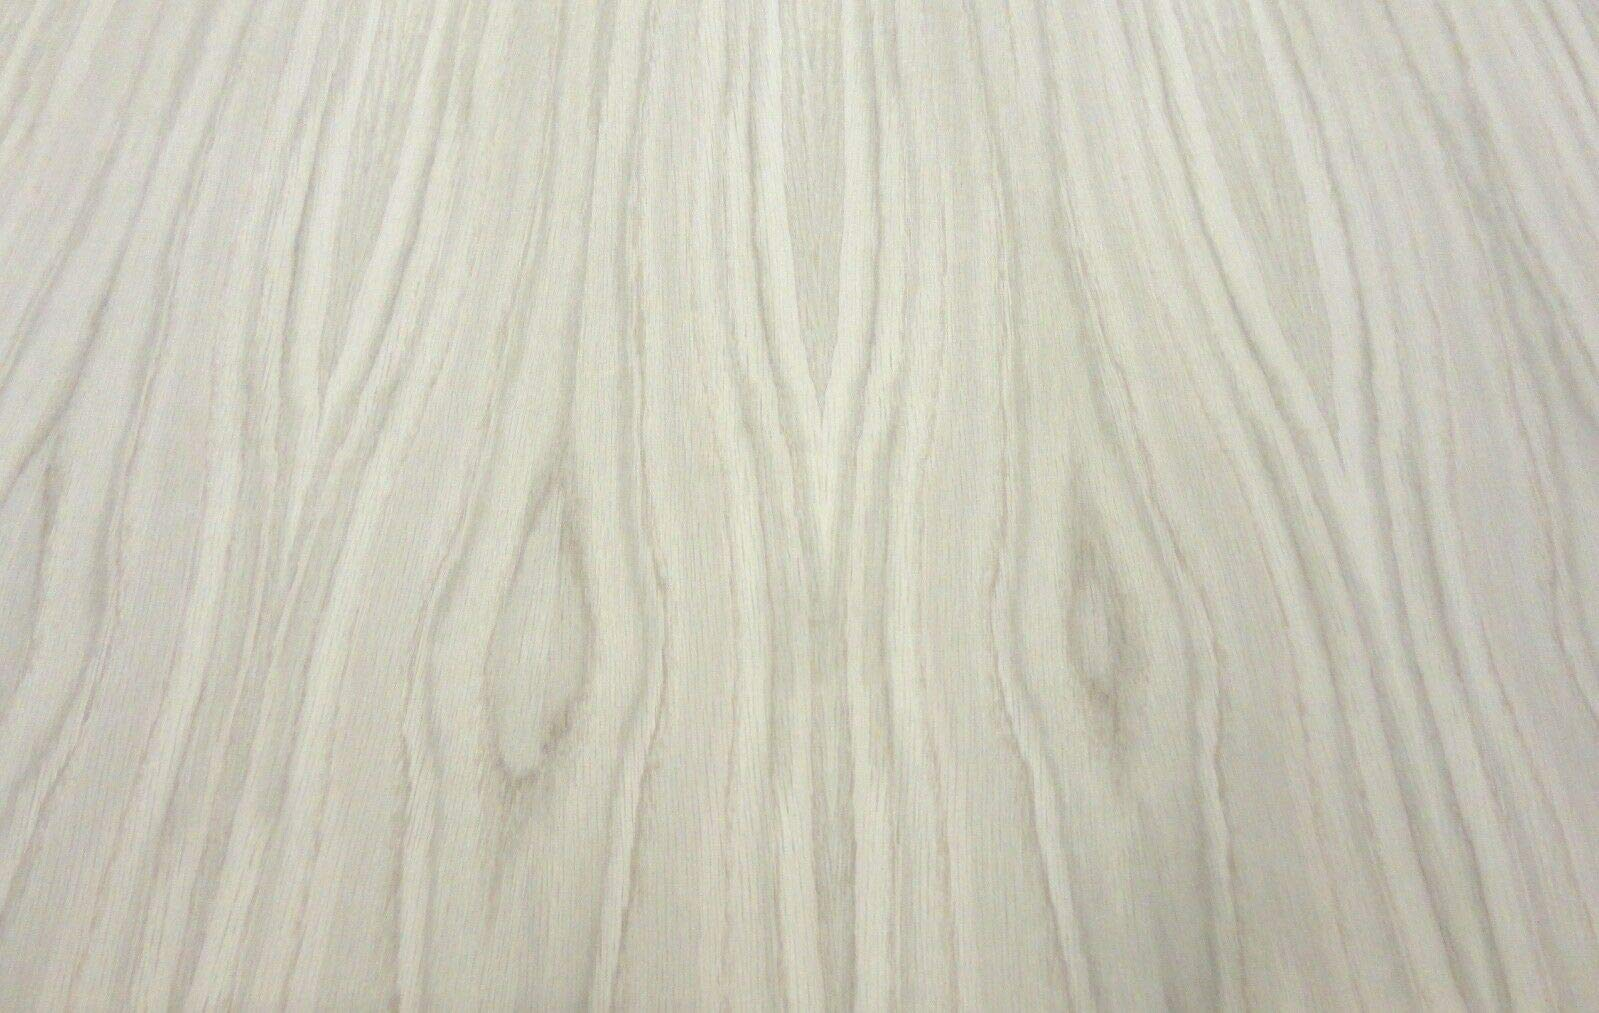 White Oak wood veneer sheet 48'' x 144'' with paper backer''A'' grade 1/40th'' thick